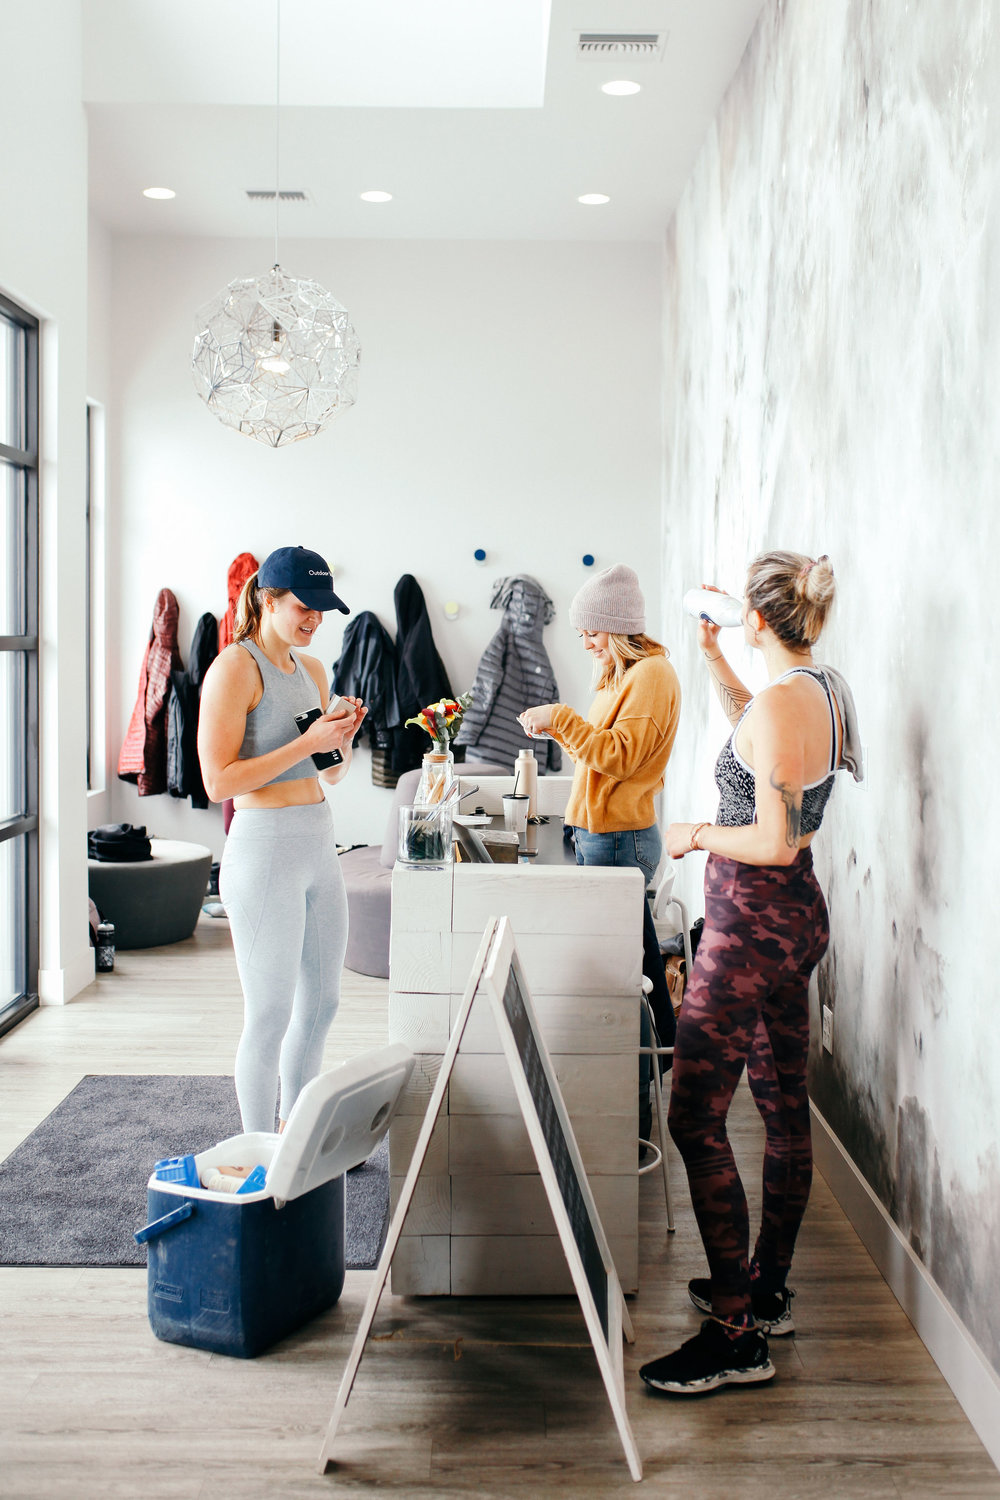 GIRL TALK - a series of sweatworking events dedicated to wellness, connection, and community